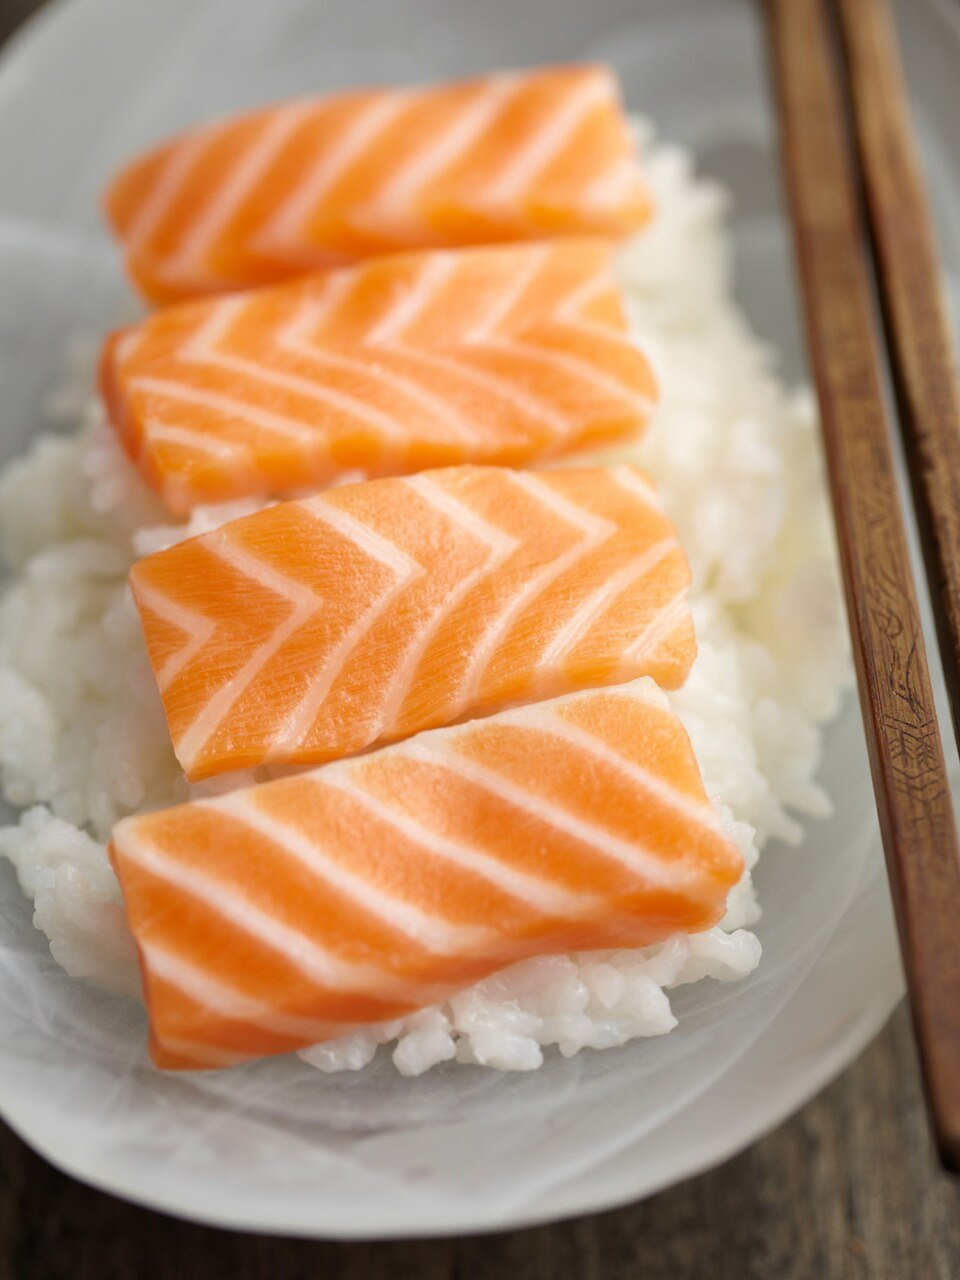 Sashimi Cut Salmon Fillet 20 lbs